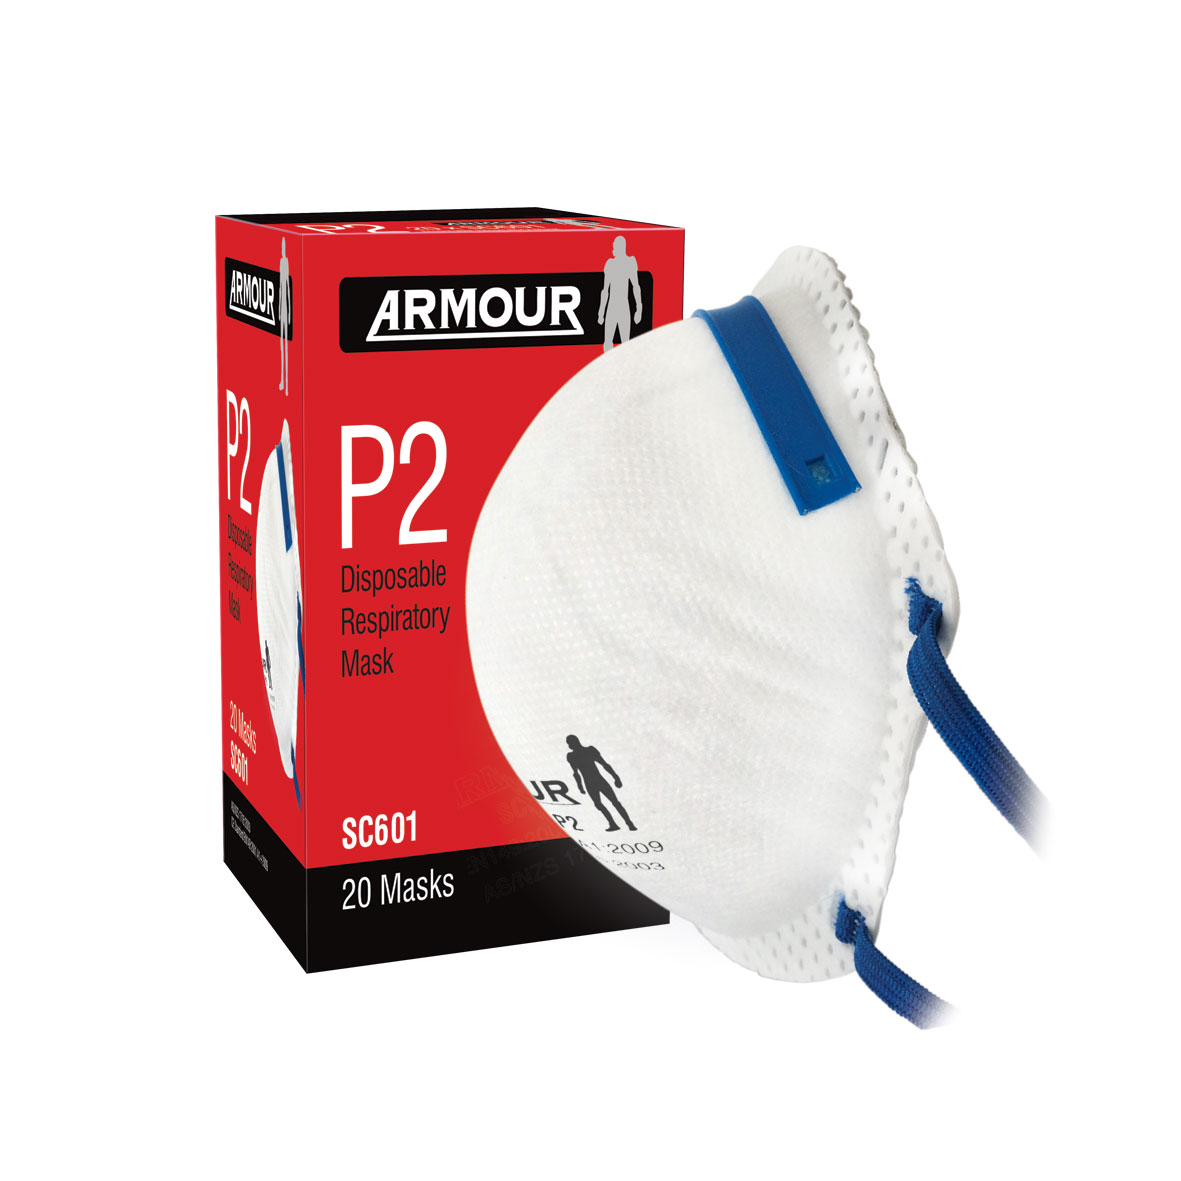 Armour Safety Products Ltd. - Armour Disposable Respirator Non Valve P2 Mask